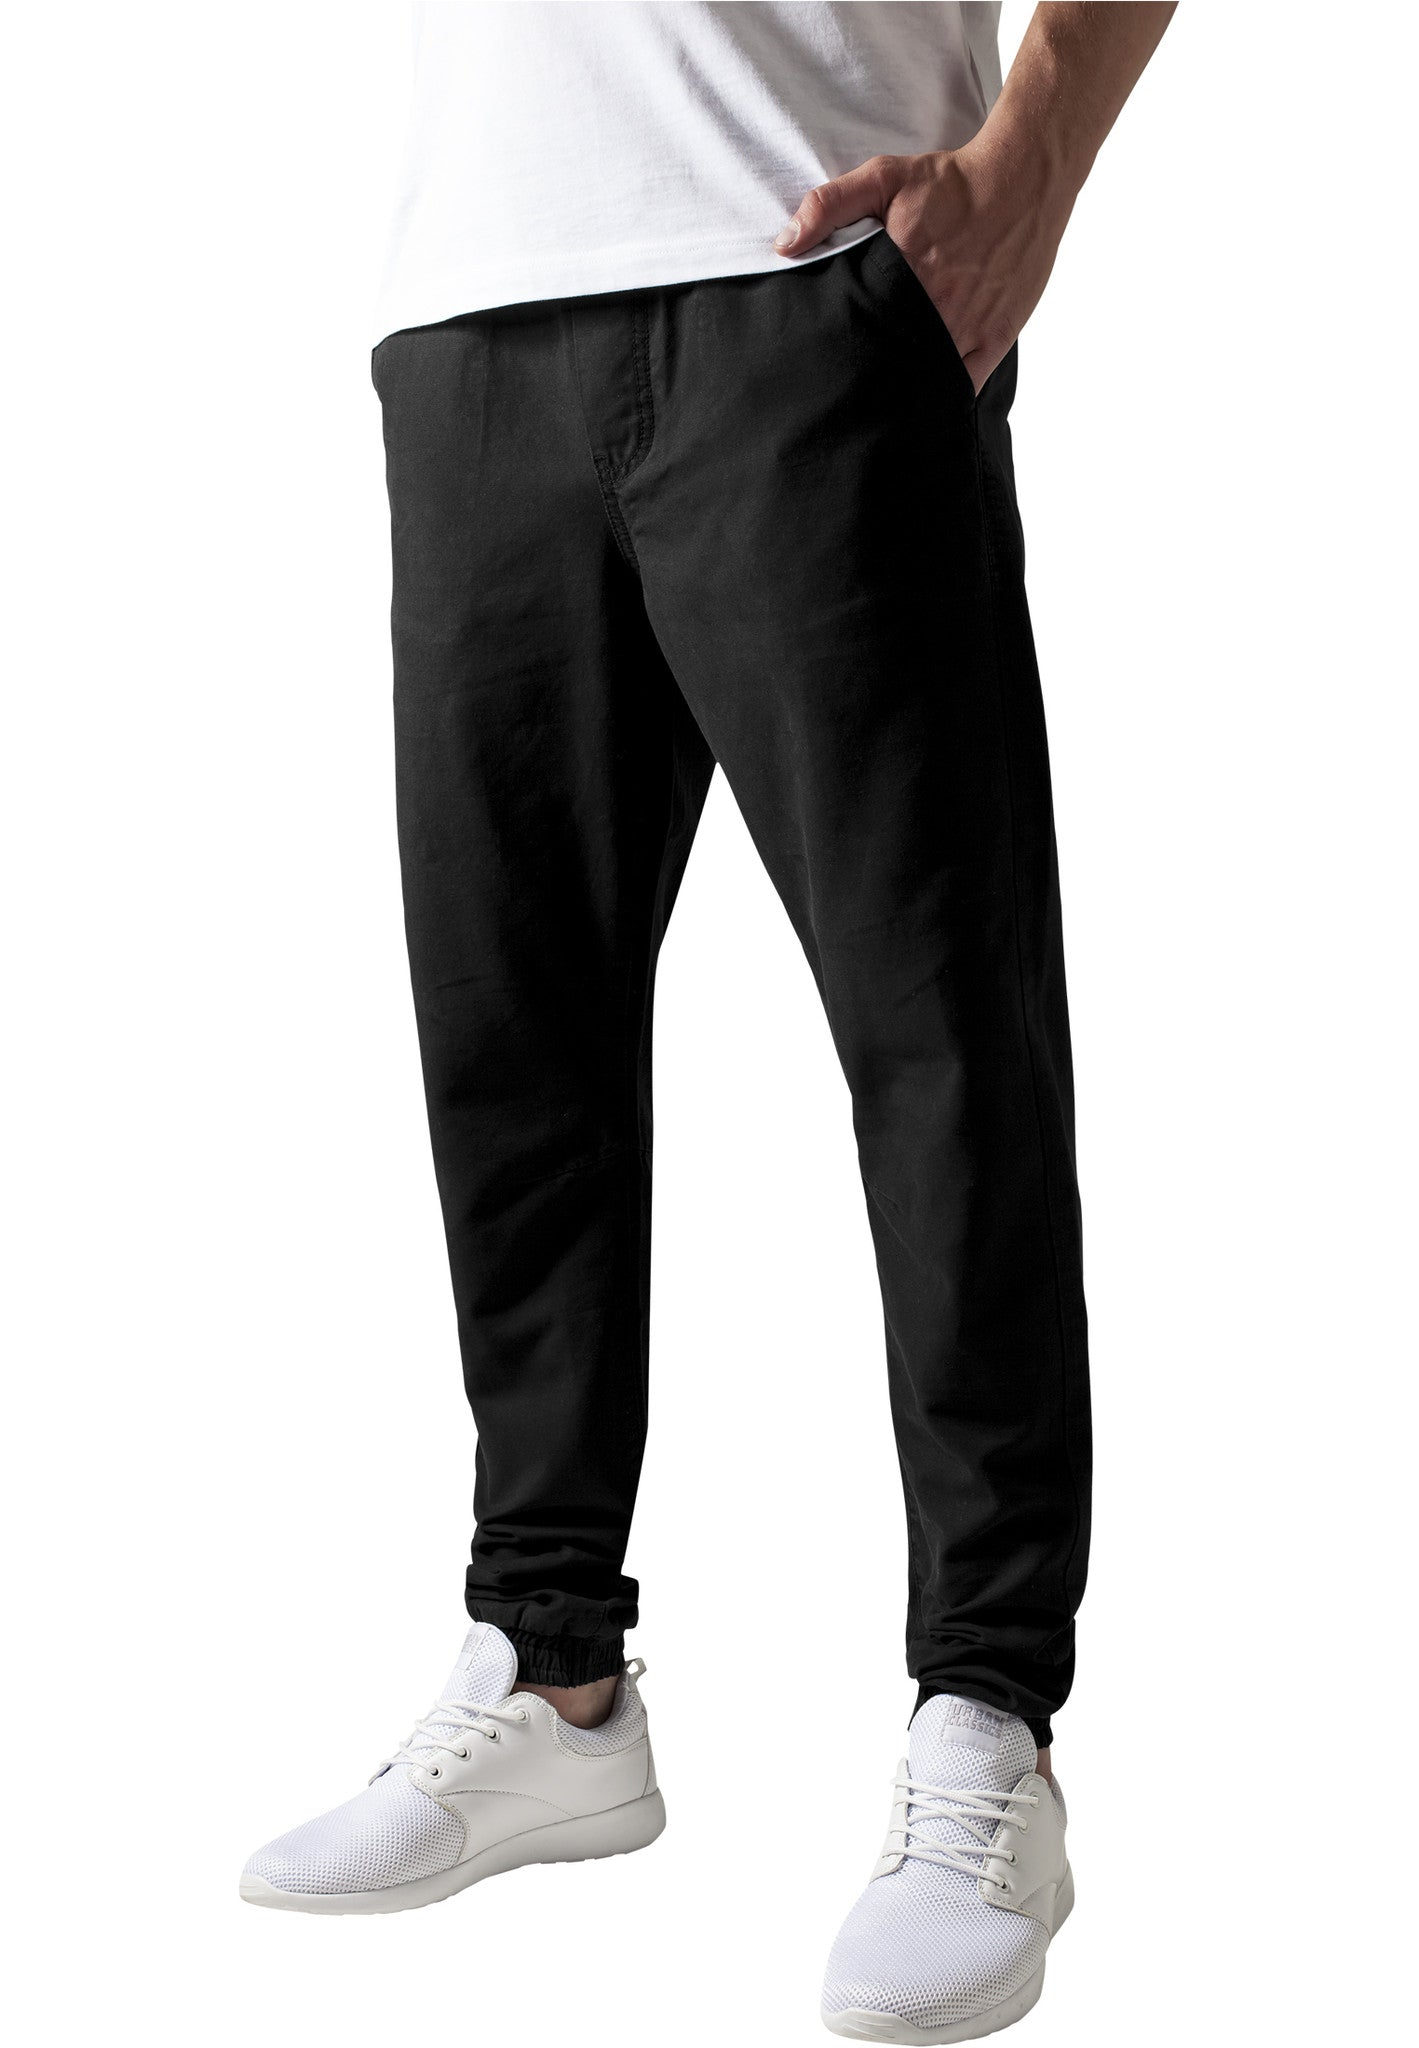 Washed Canvas Jogging Pants TB1434 Black